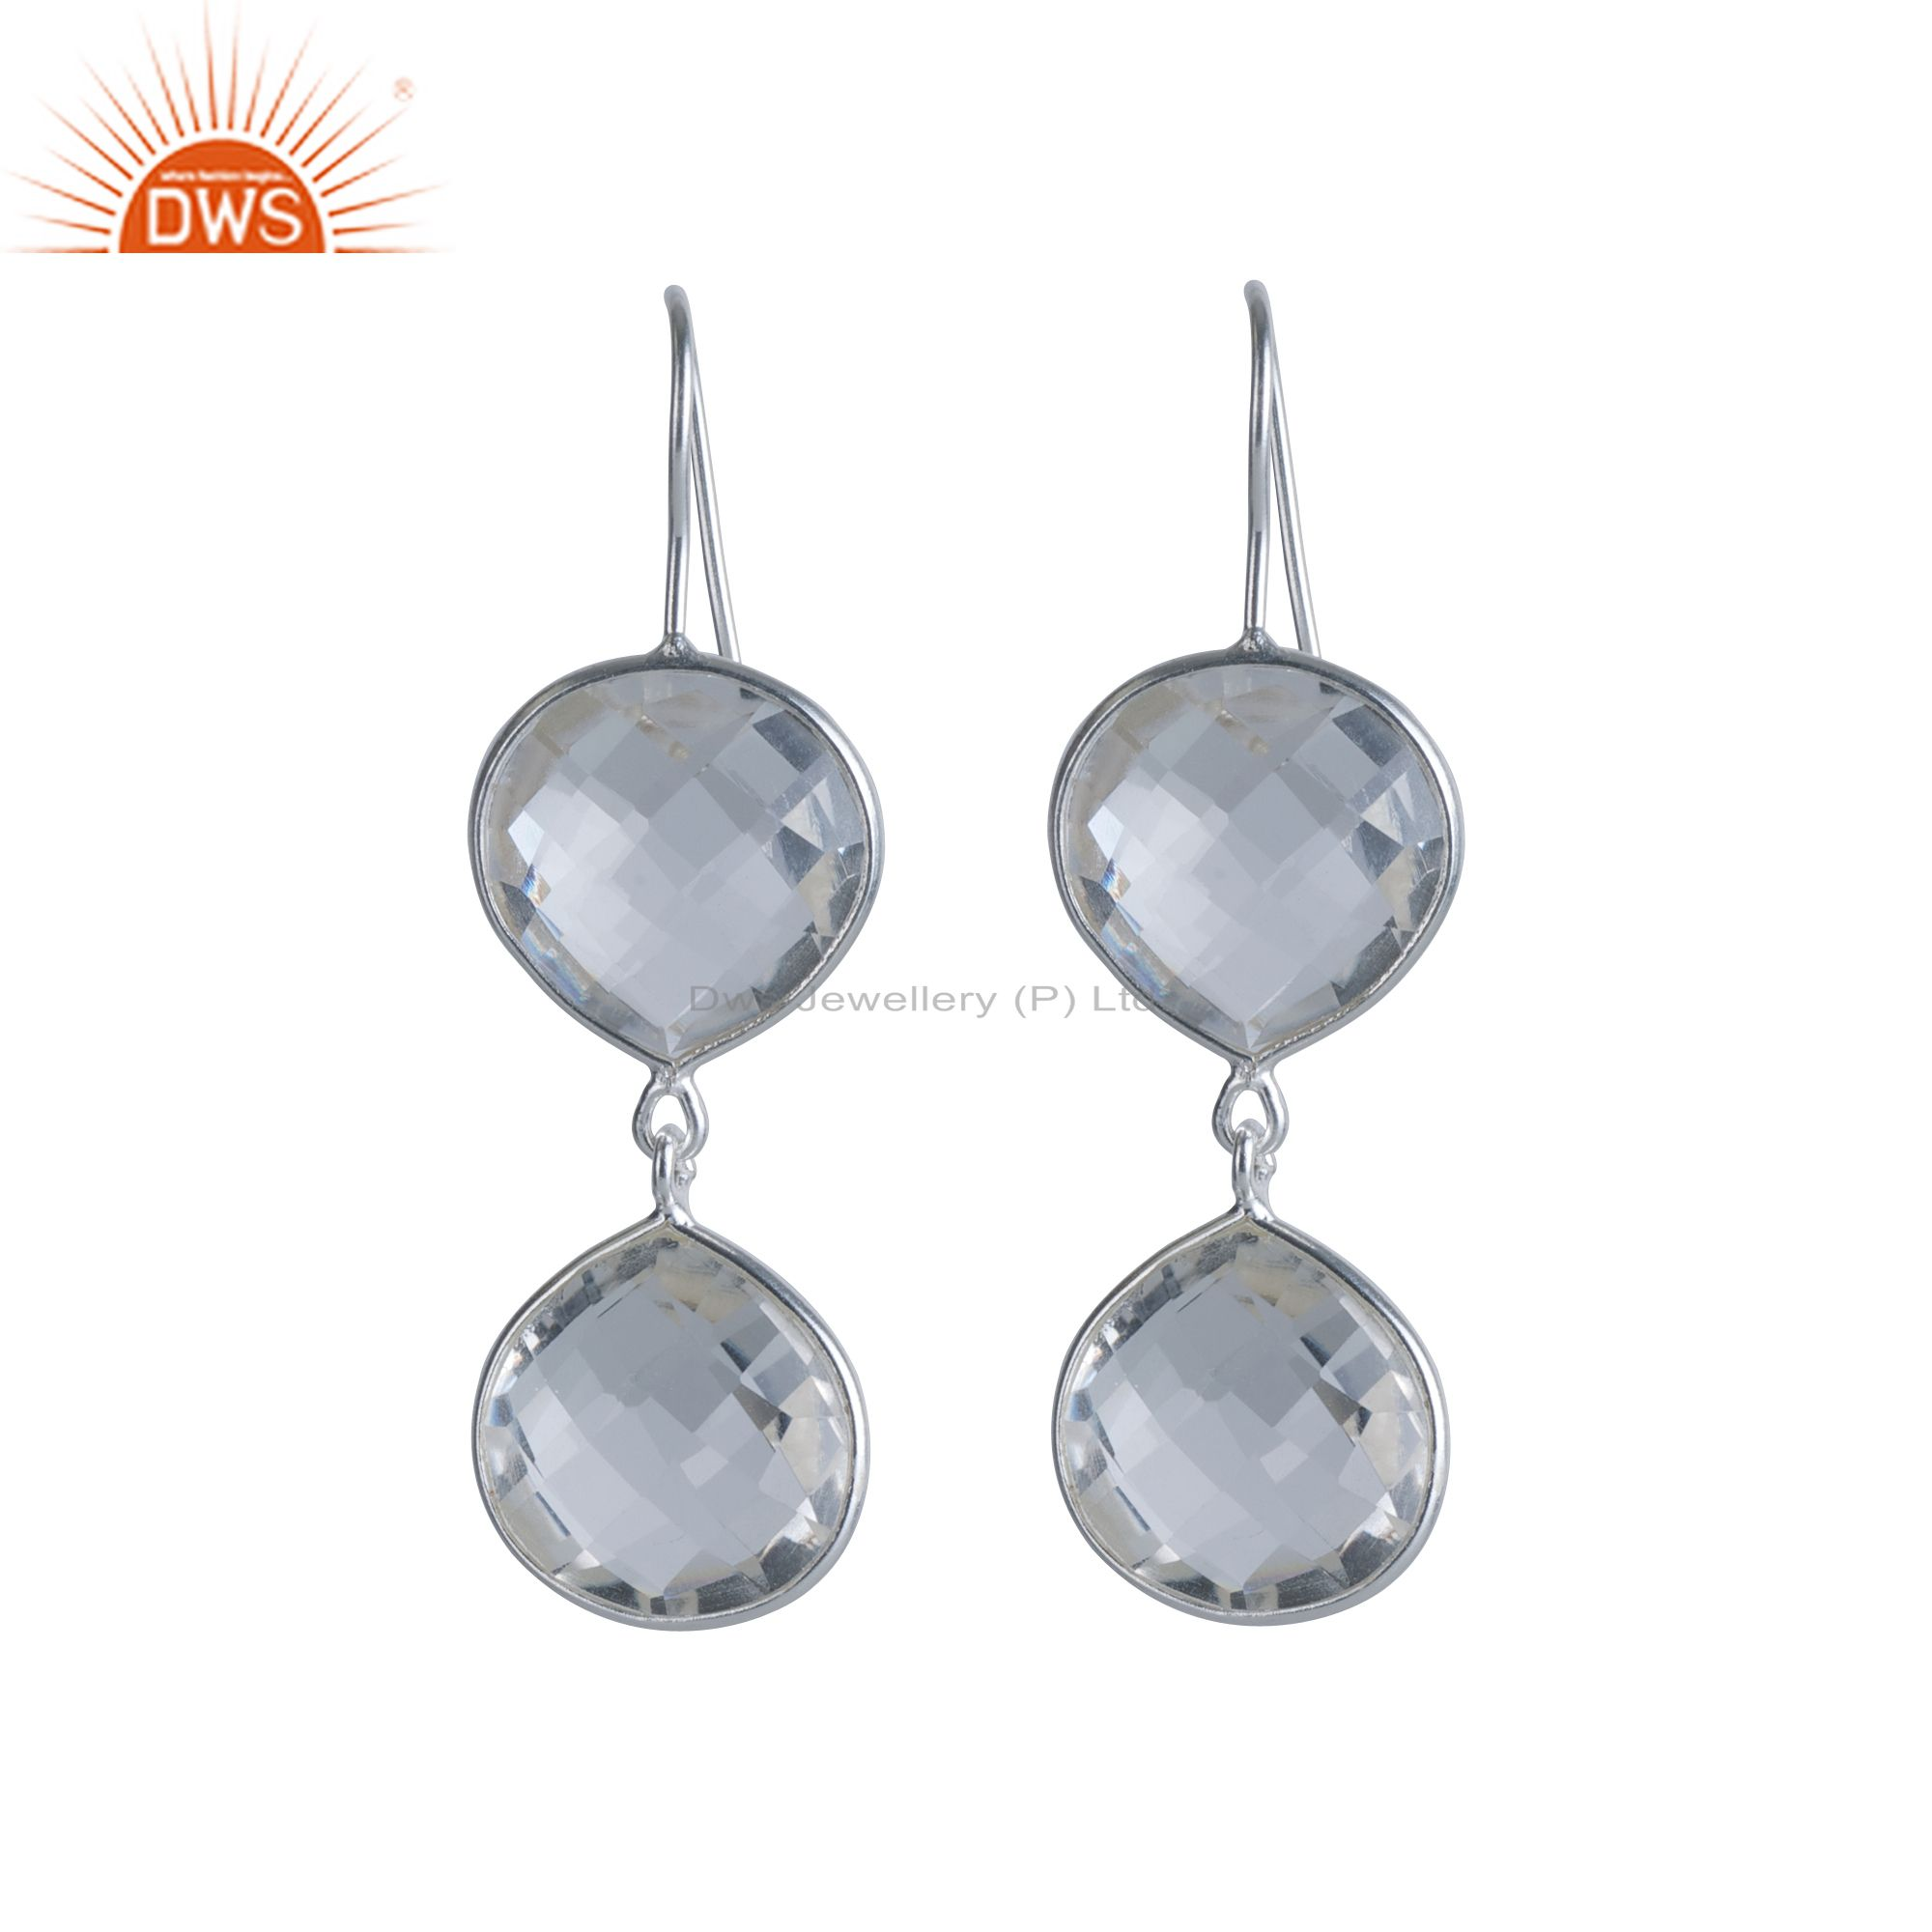 Handmade 925 Sterling Silver Crystal Quartz Bezel Set Double Drop Earrings